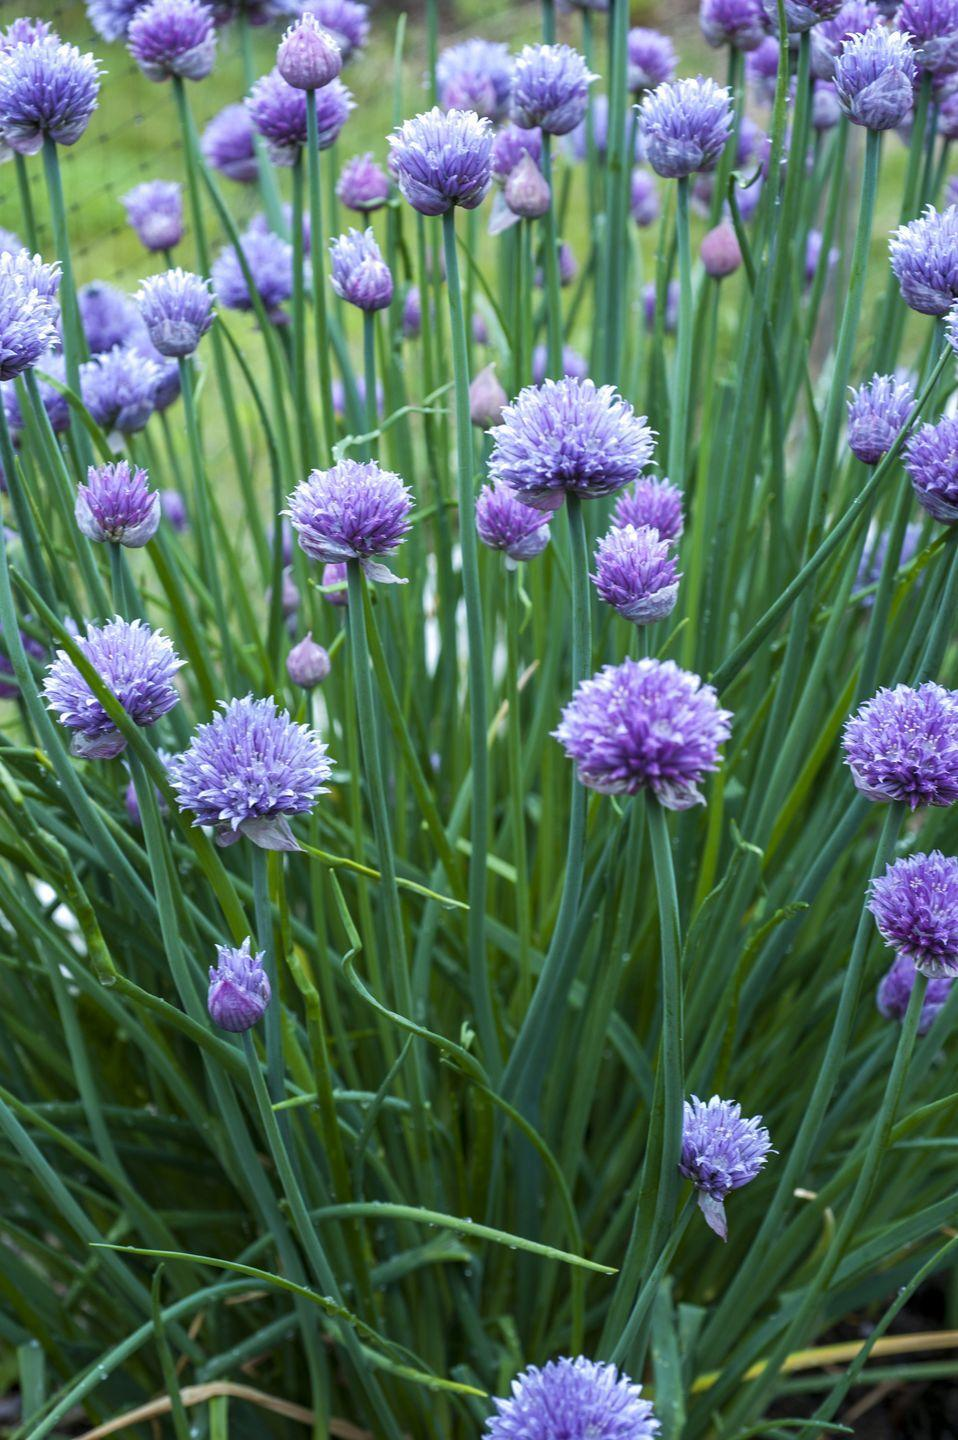 <p>Chives, similar to onions, leeks, and scallions, makes for a wonderful garnish atop a variety of savory dishes and salads. Chives are considered biennial, having to be replanted every couple of years. The gorgeous thistle-like purple blooms are edible and will add a pop of color to your garden.</p>